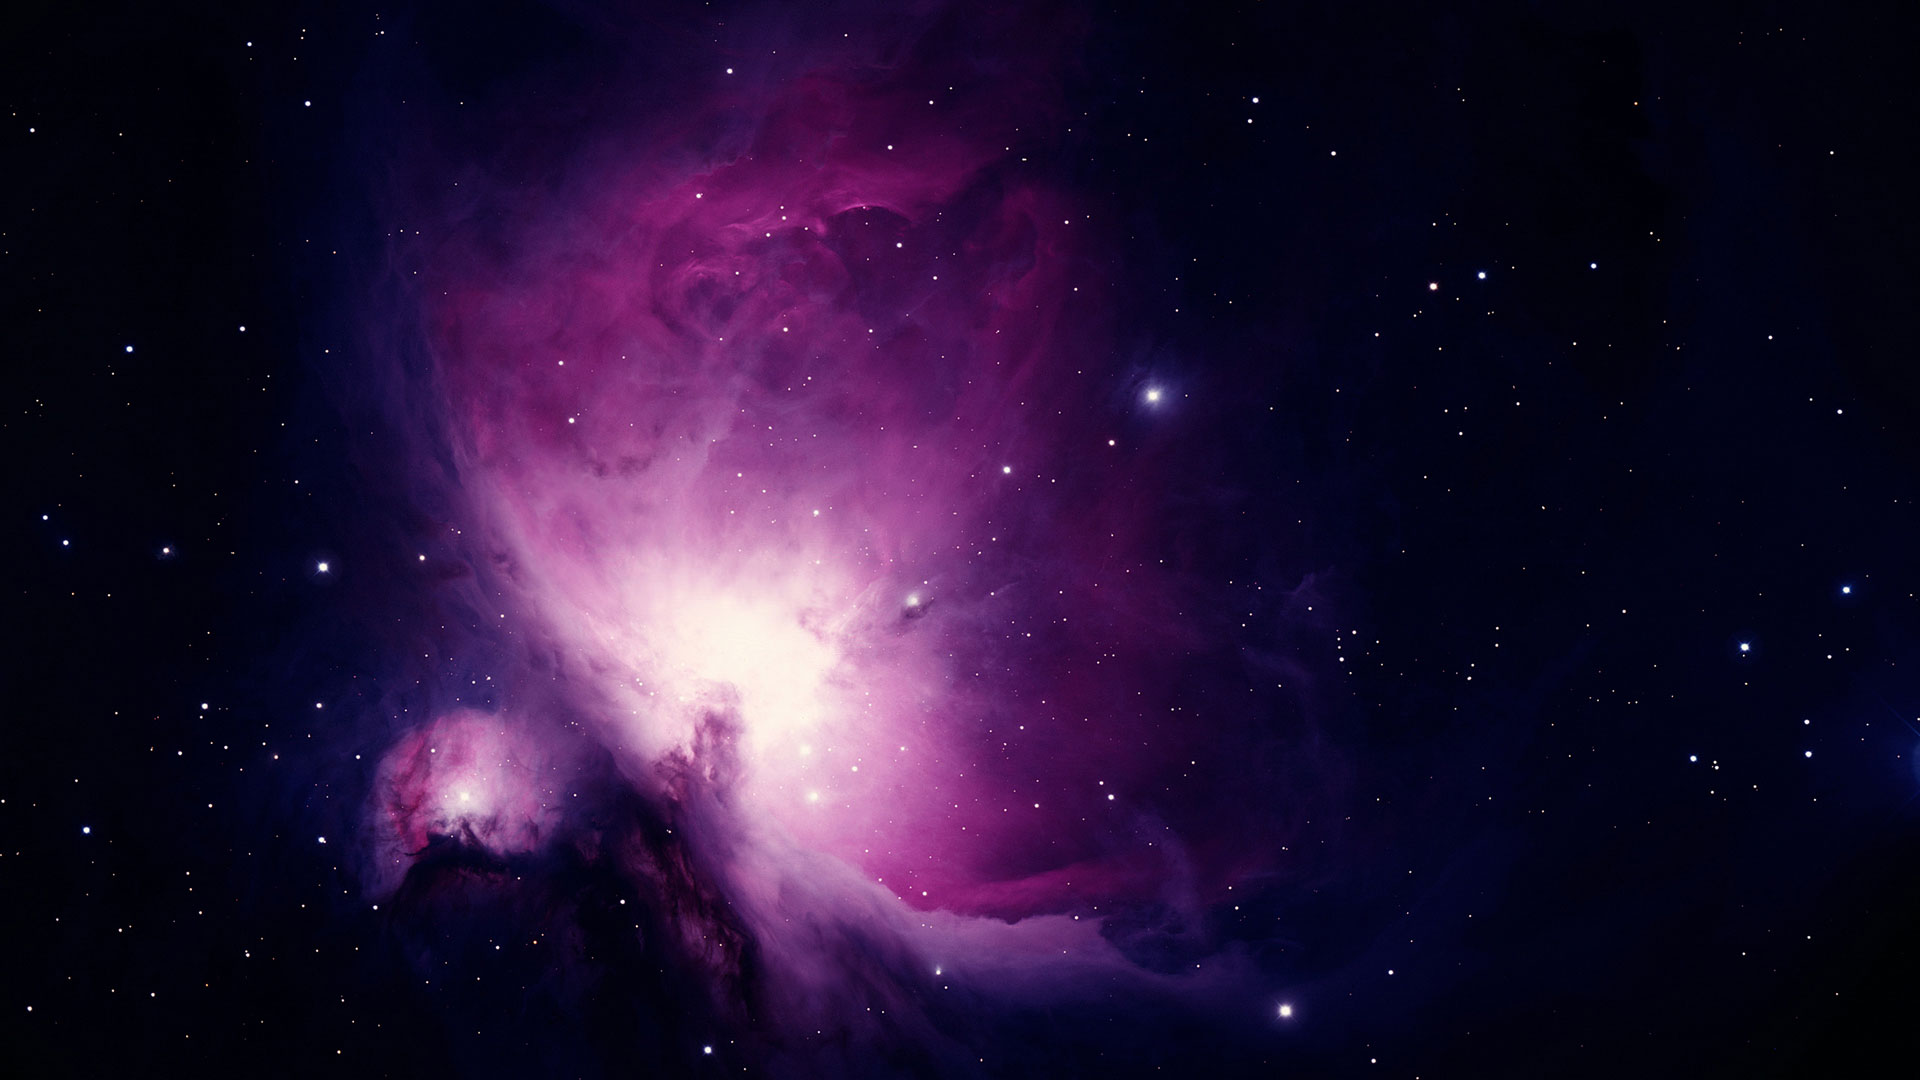 nebula background tumblr - photo #5